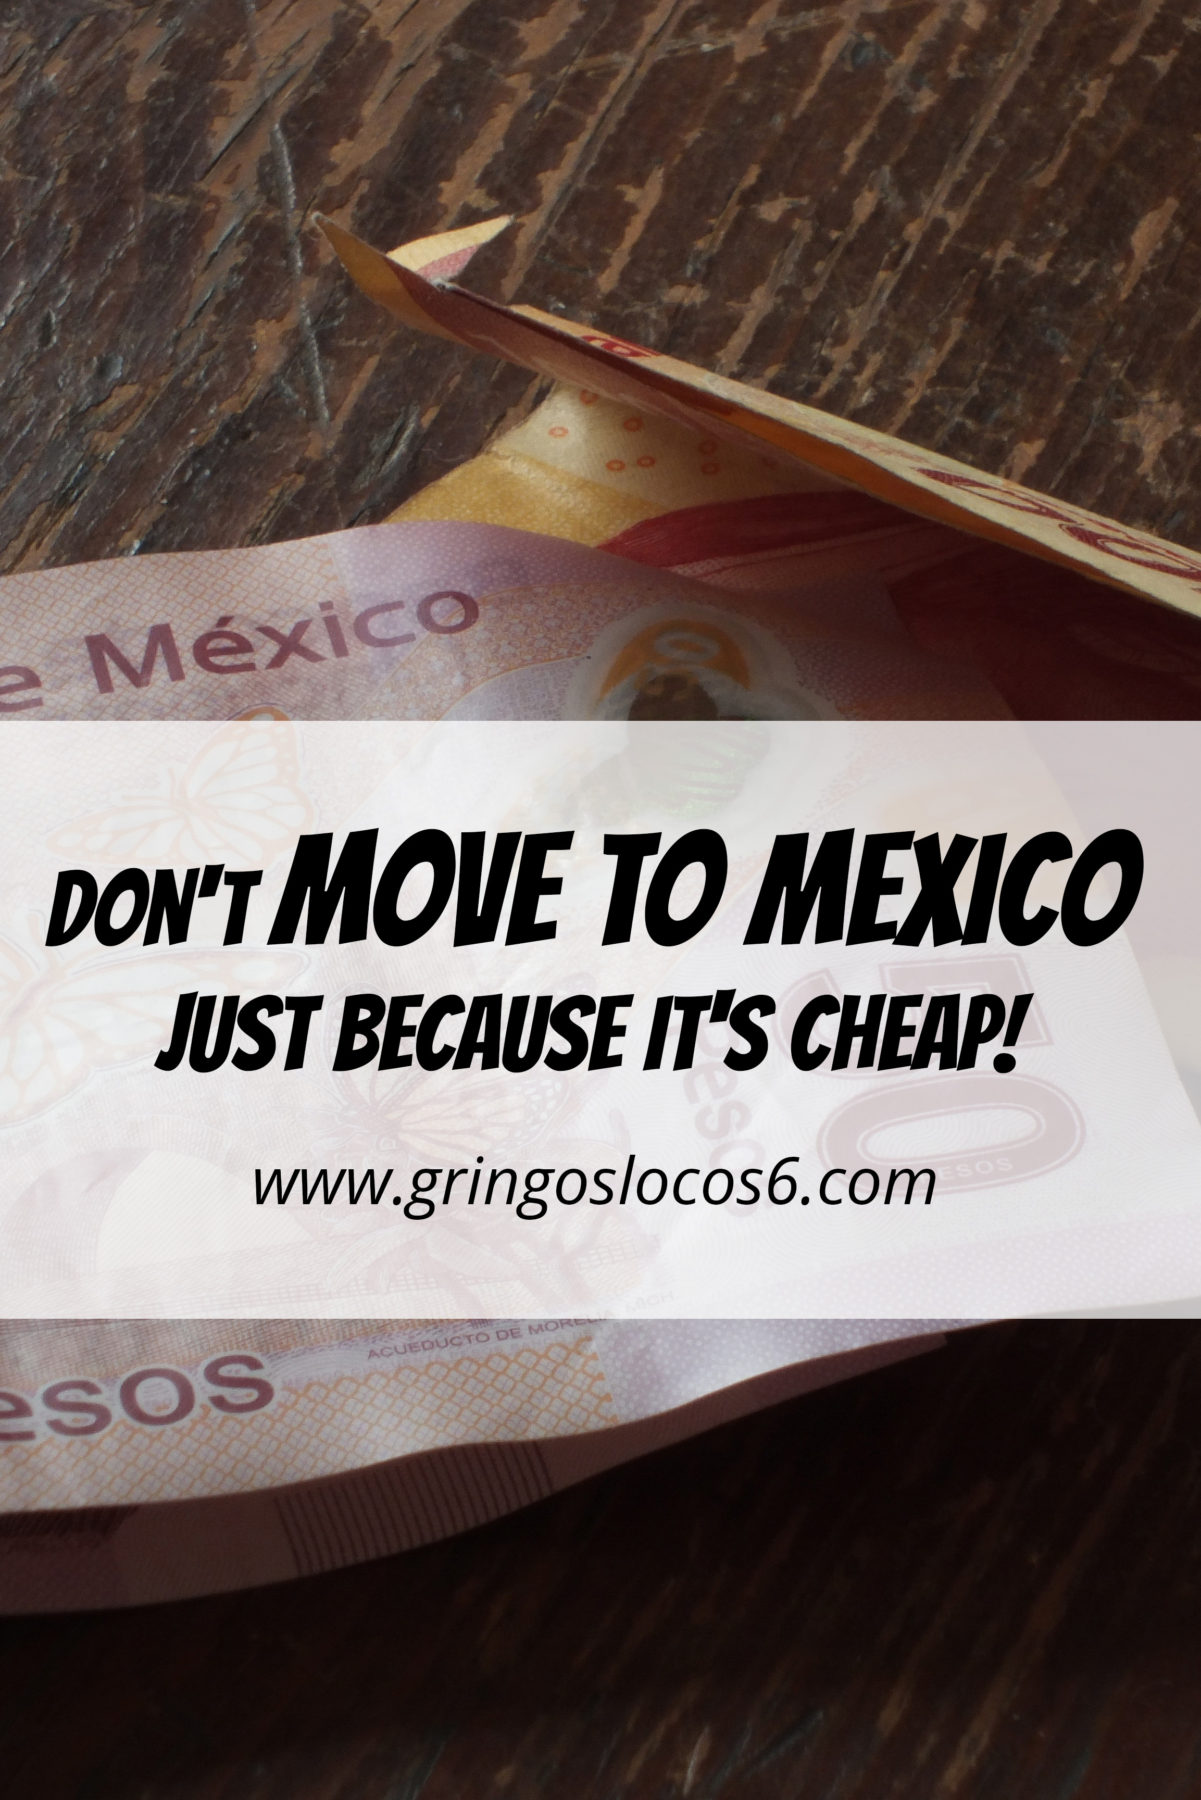 If this is your only reason for a move to Mexico you probably won't last long. A move to any country requires change and a love for adventure!